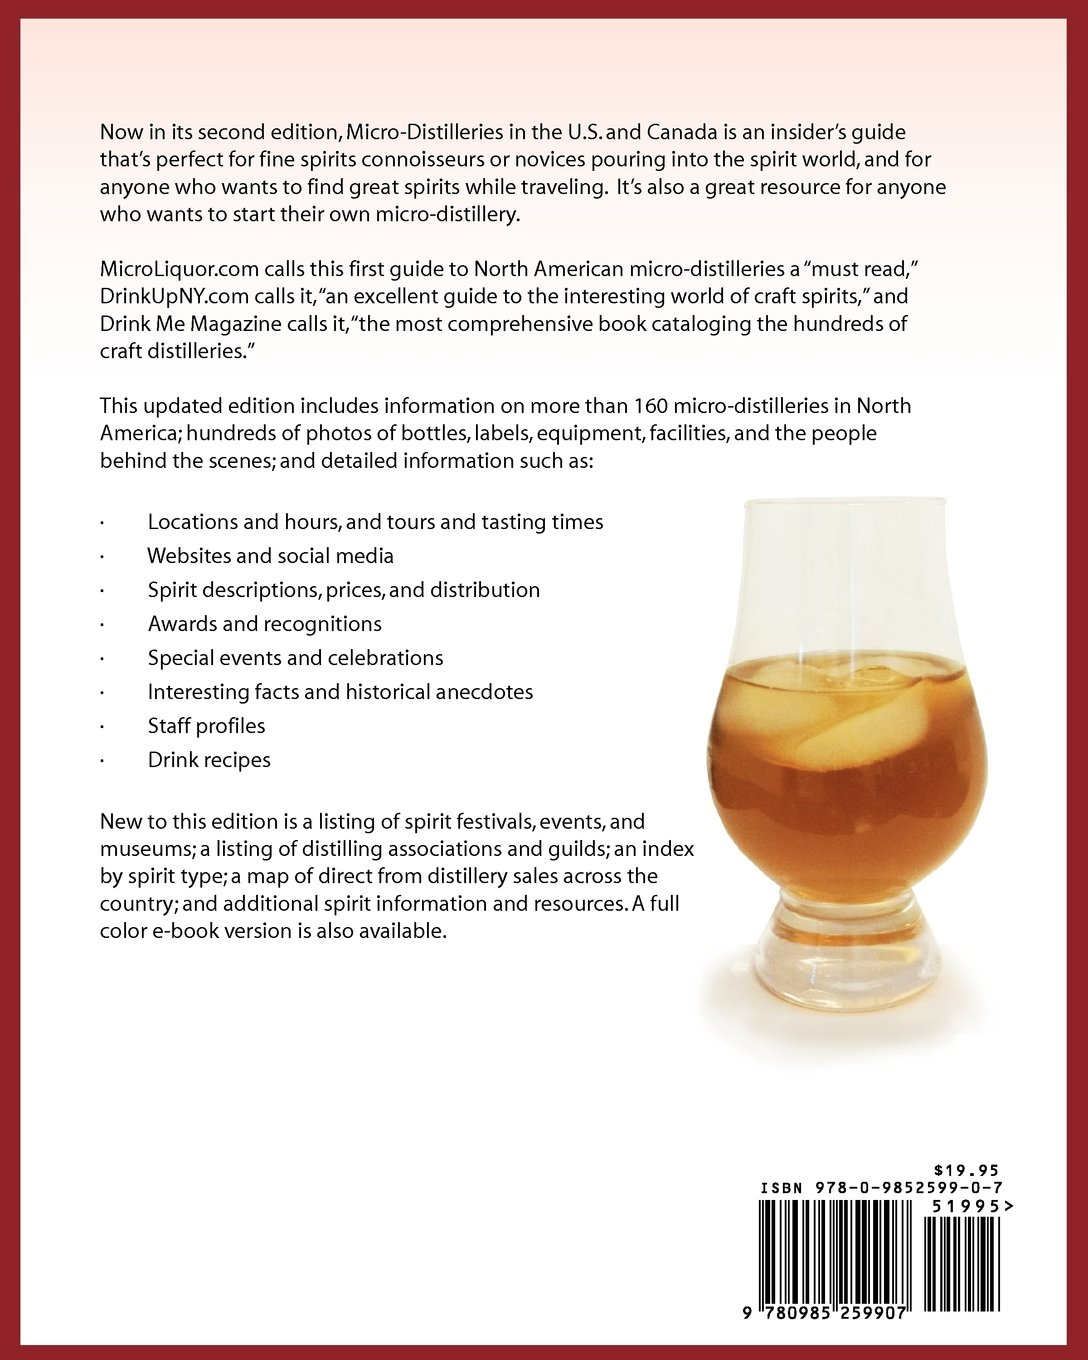 Microdistilleries In The Us And Canada, 2nd Edition: David J Reimer Sr:  9780985259907: Amazon: Books